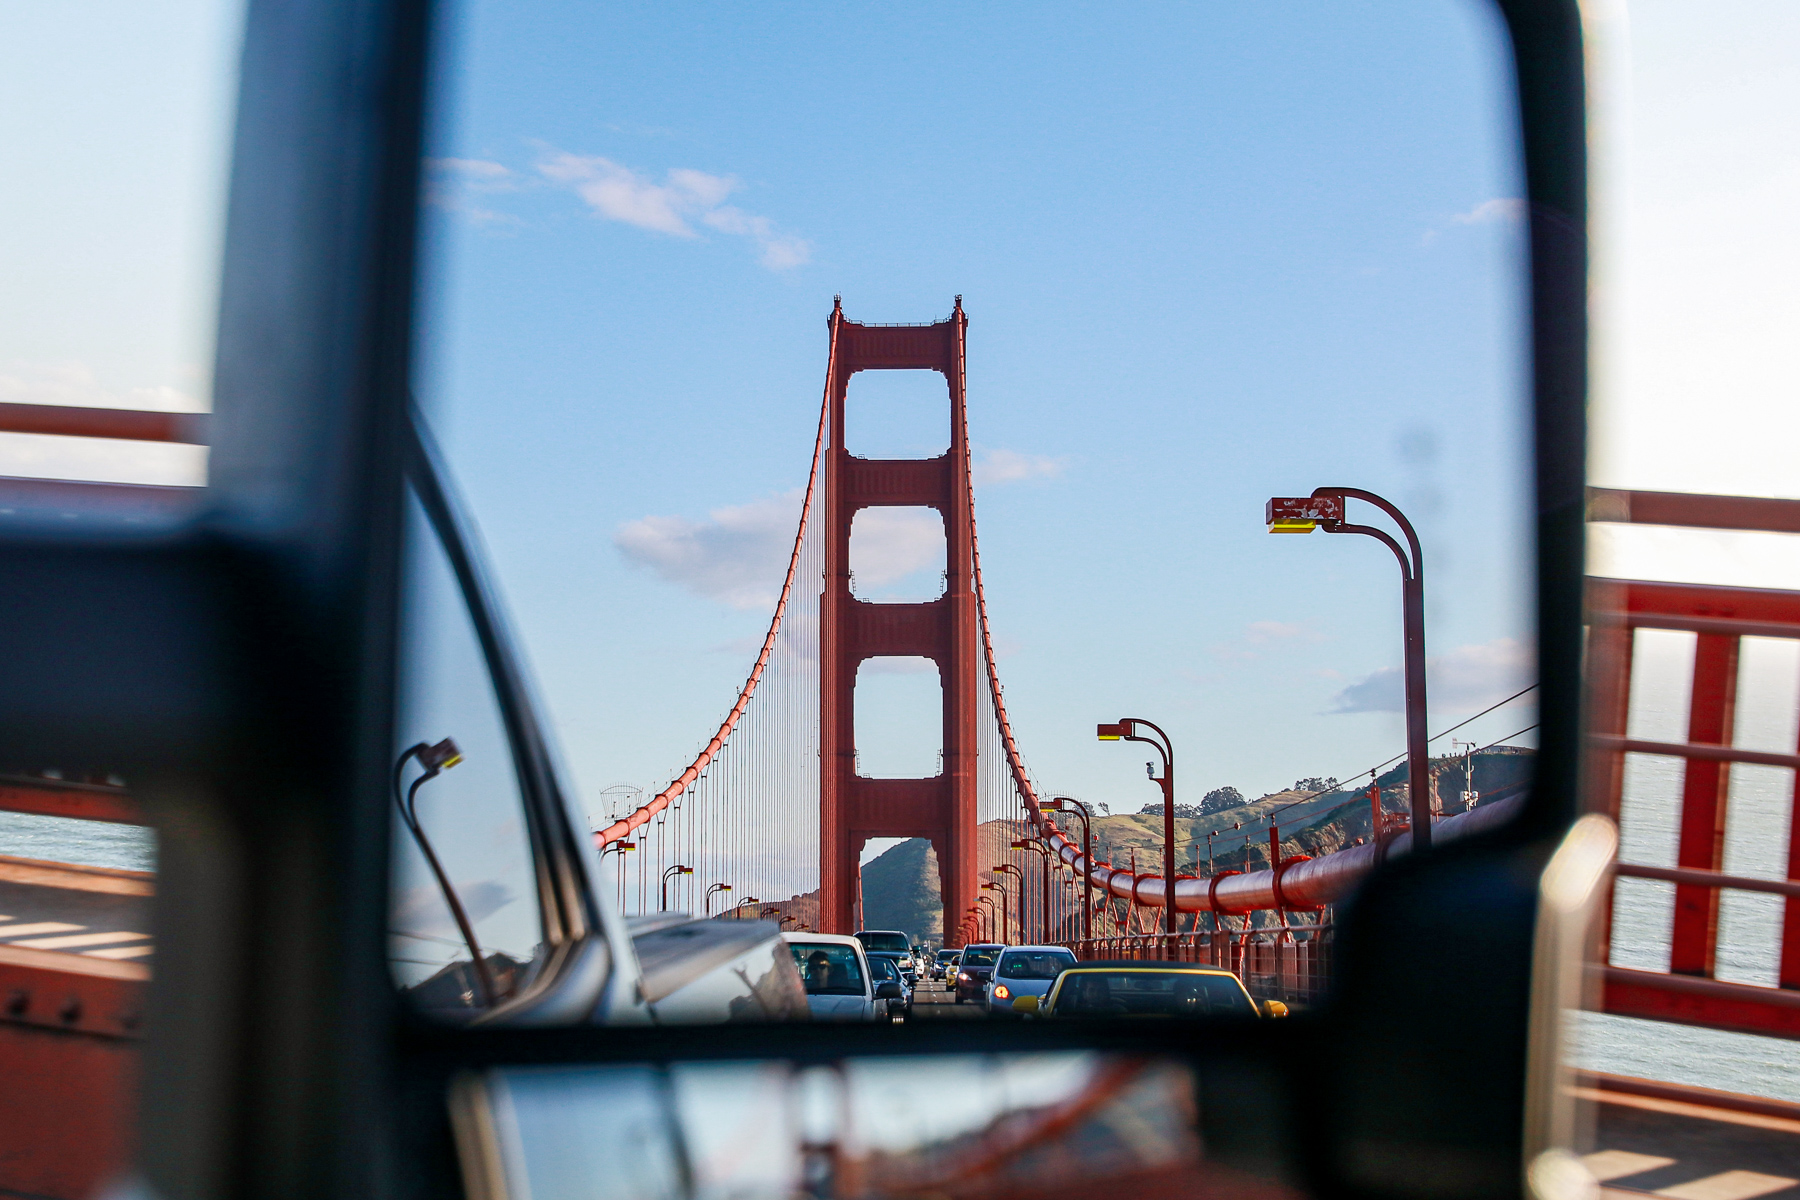 20-CA-sanfrancisco83b.jpg